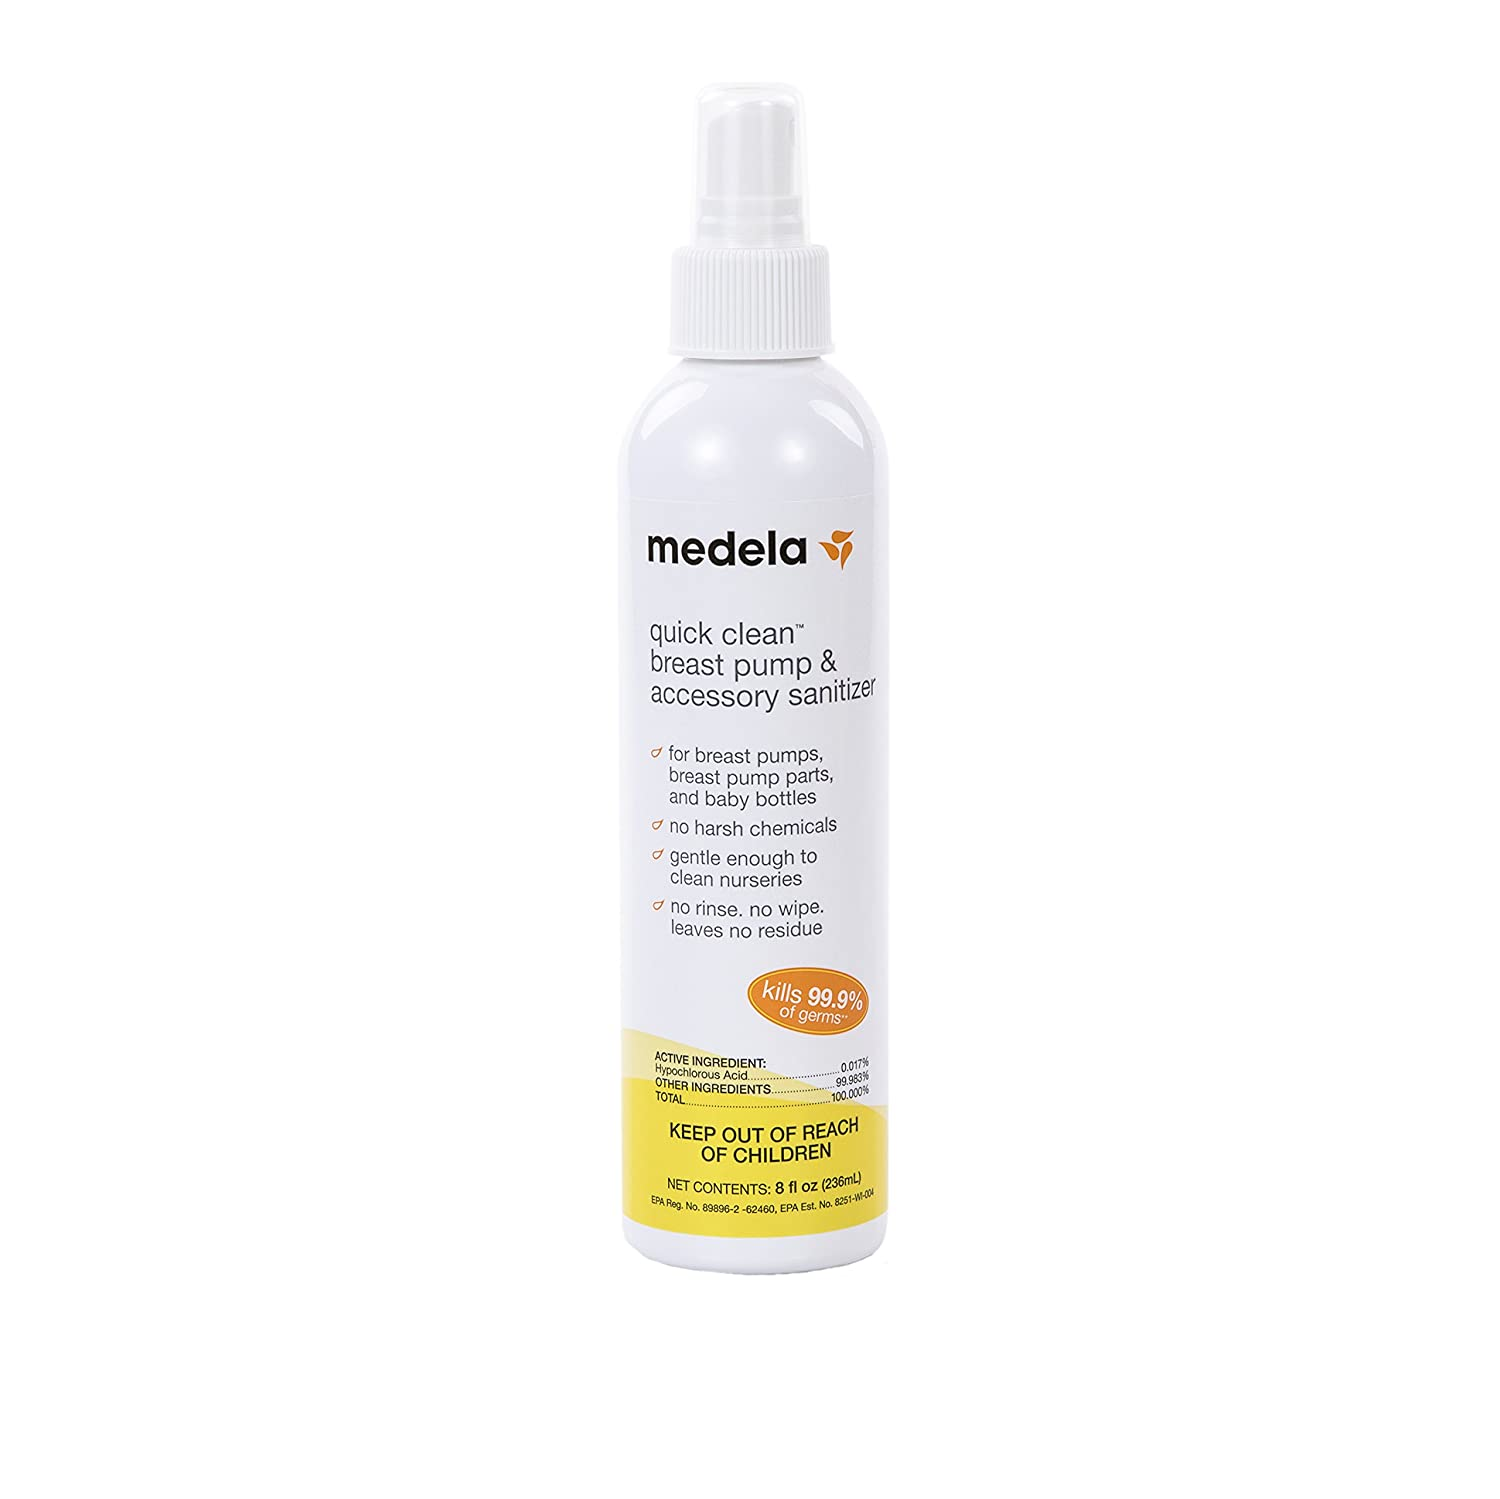 Medela Quick Clean Breast Pump and Accessory Sanitizer Spray, 8 fluid ounce bottle, Eliminates 99.9% of Bacteria and Viruses with a Safe, No-Rinse Solution Inc. 87246